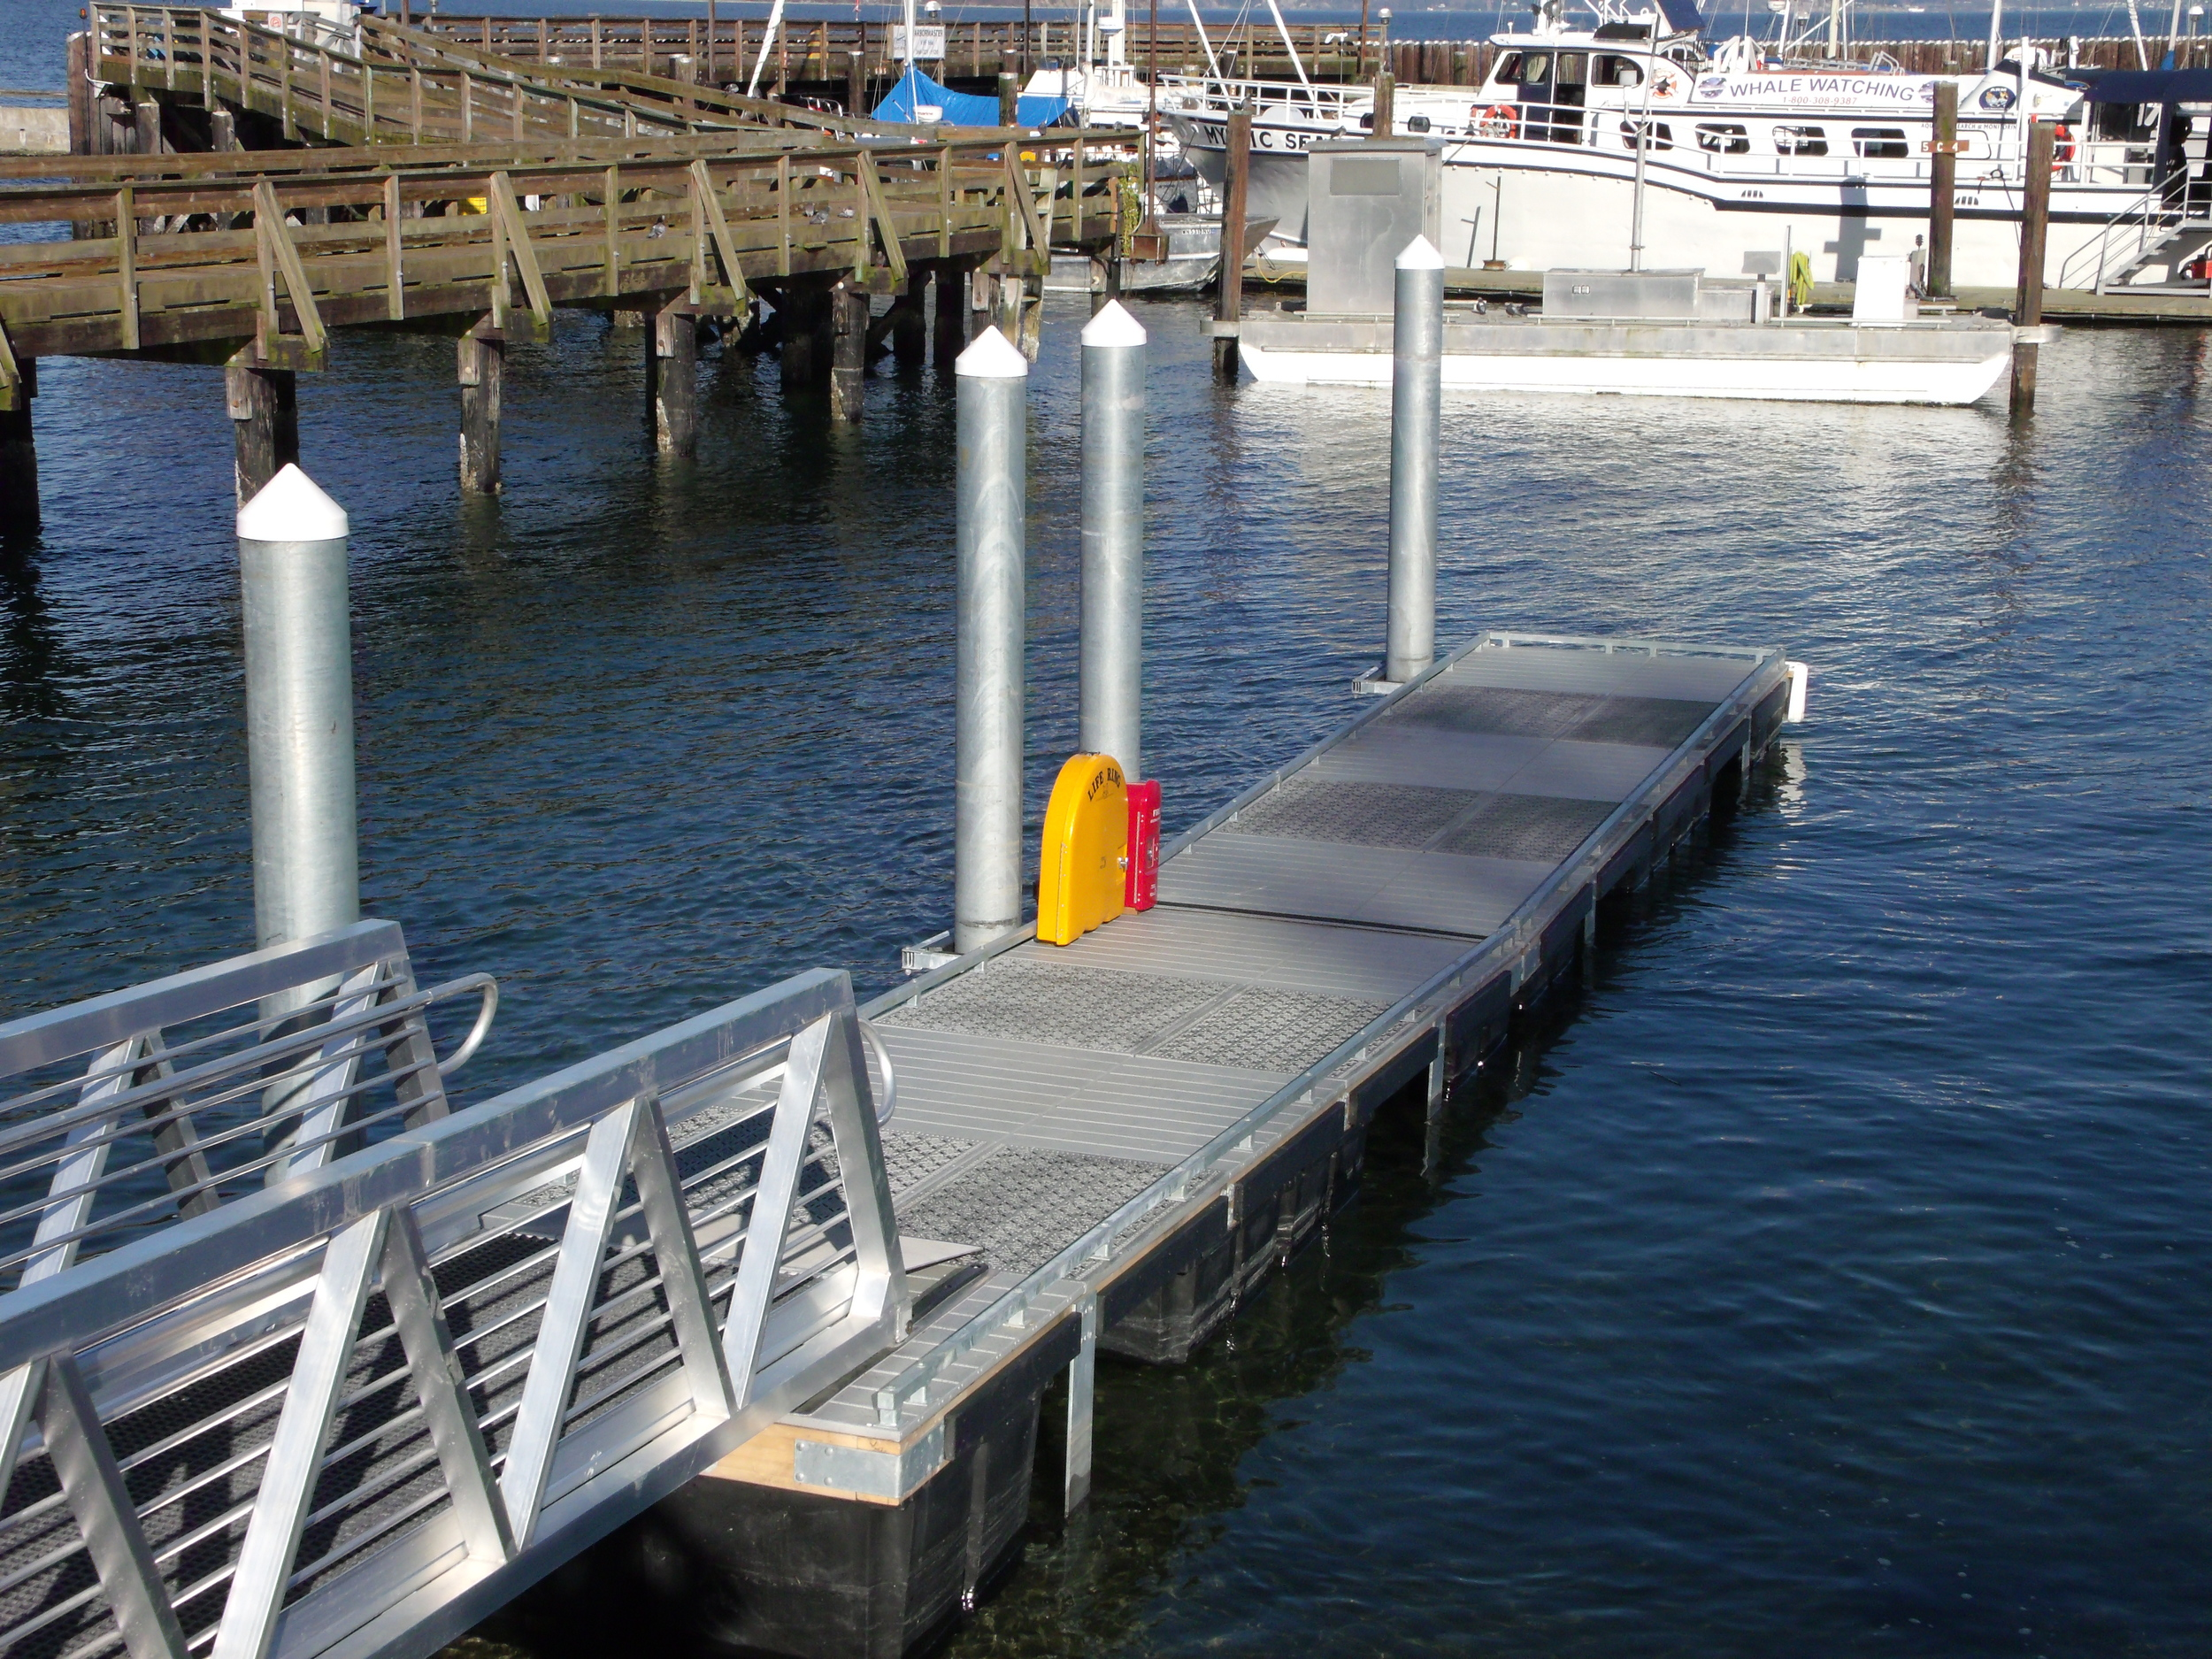 Boat Ramp Dock at Langley, WA for The Port of South Whidbey Launch Spring 2013. Eco Series Steel Dek and Pier Series Steel Dek used together in Grey with Black Texture. Dock Designed by Reid Middleton Engineers Everett, WA. General ContractorNeptune Marine Anacortes, WA.